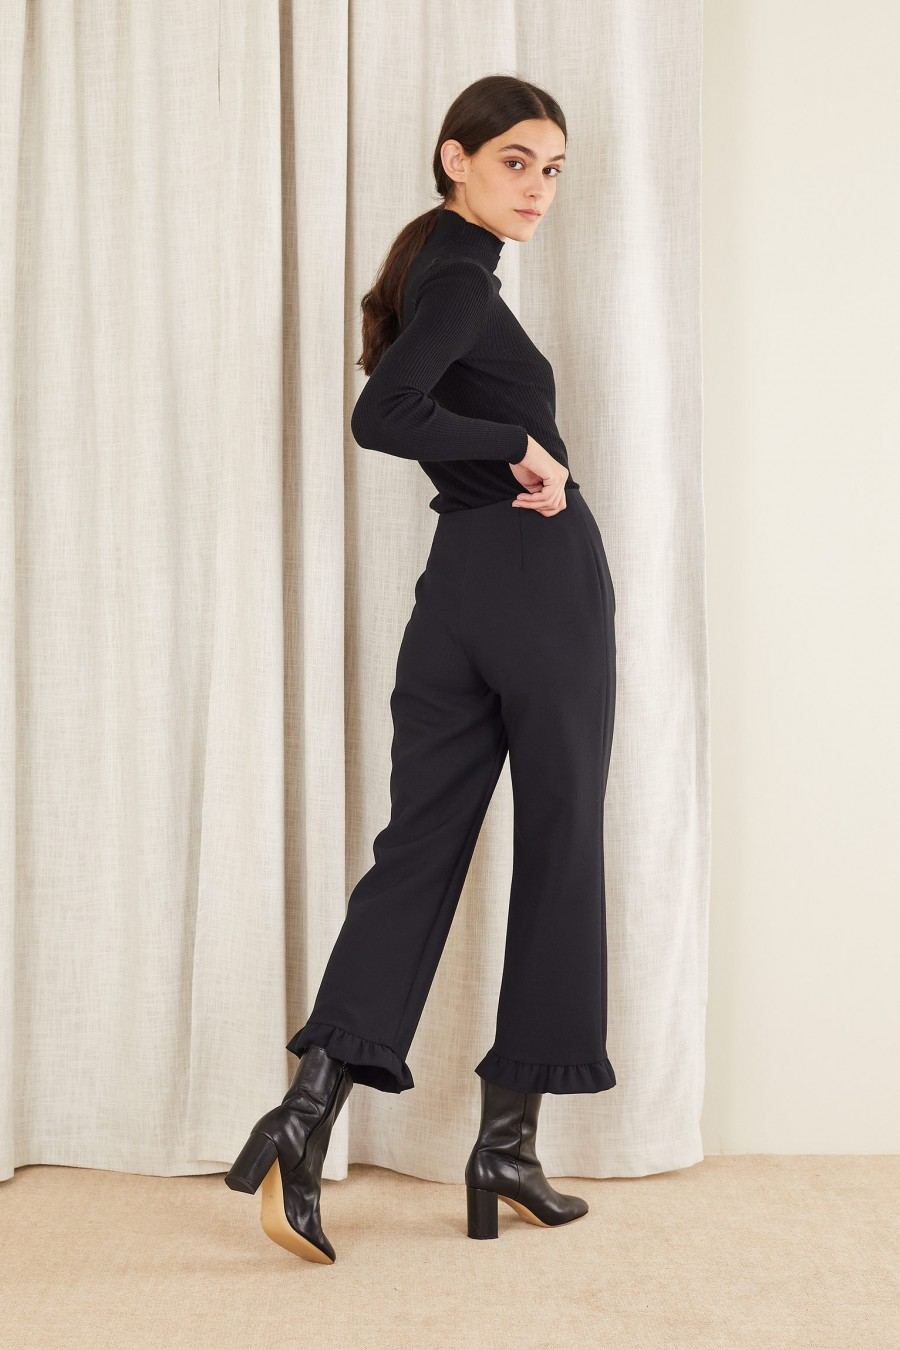 ruffle hem trousers and ankle boots